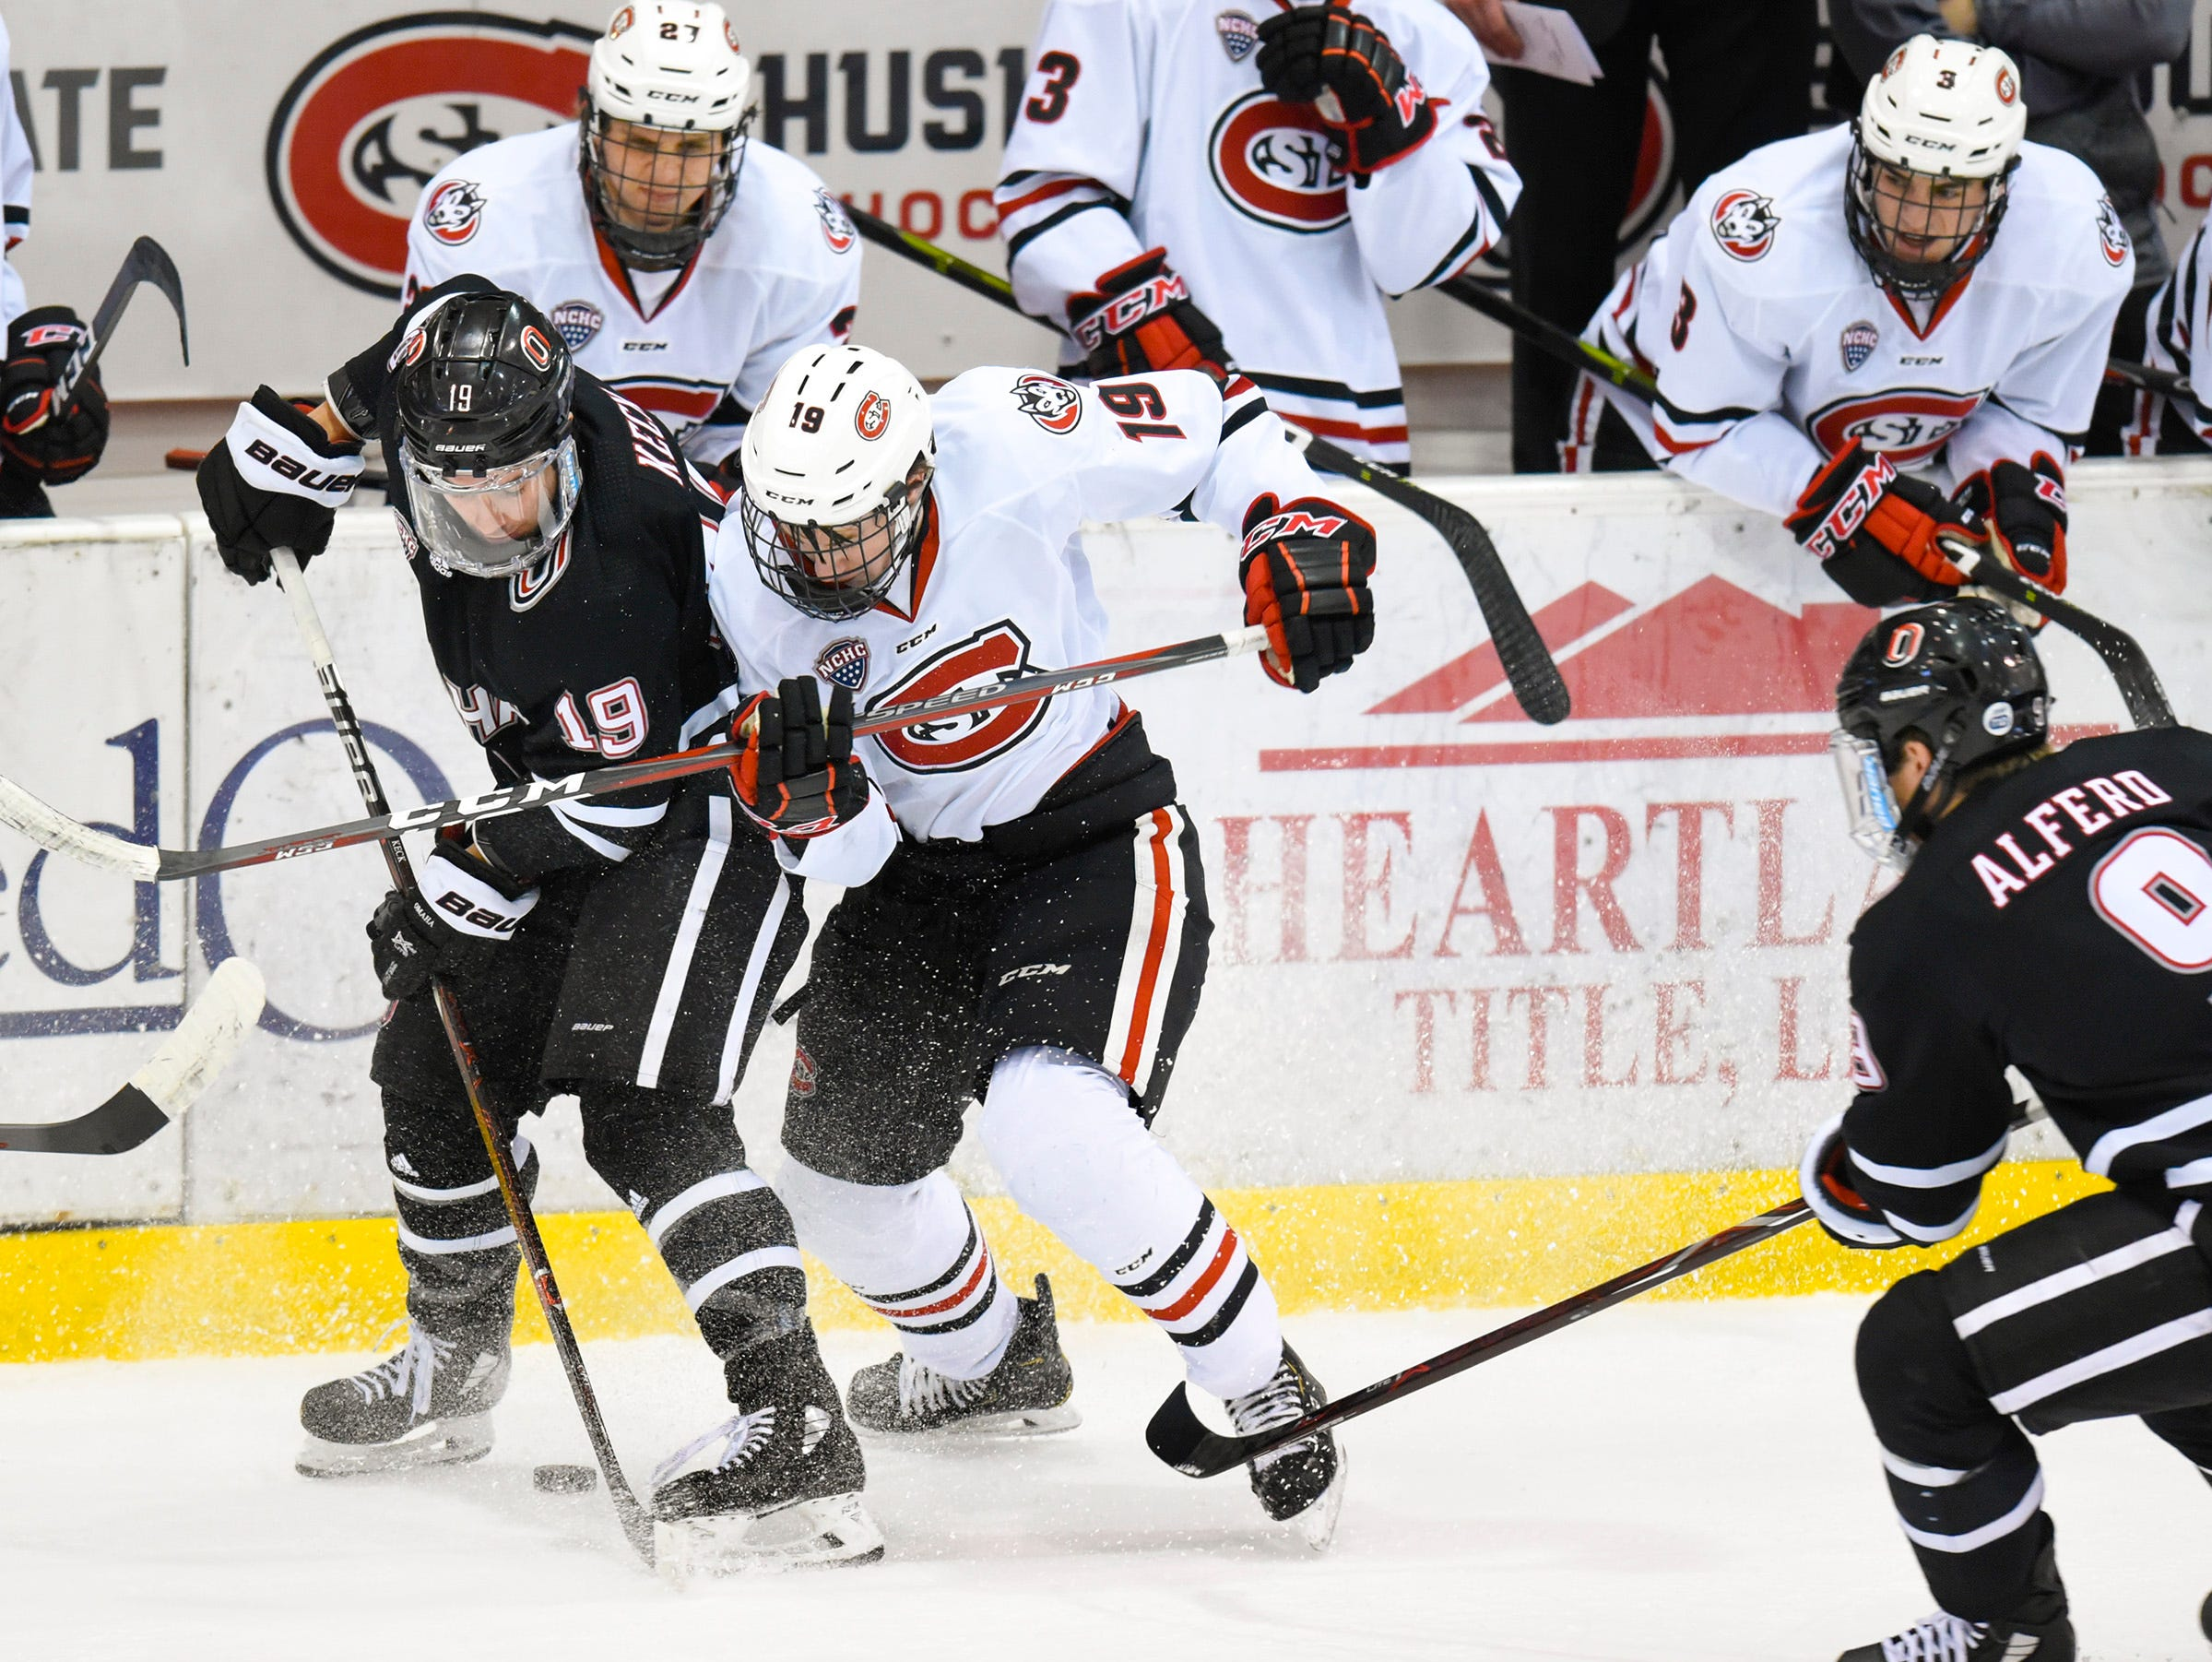 St. Cloud State's Sam Hentges and Nebraska-Omaha's Tristan Keck battle for the puck during the first period Saturday, Dec. 8, at the Herb Brooks National Hockey Center.